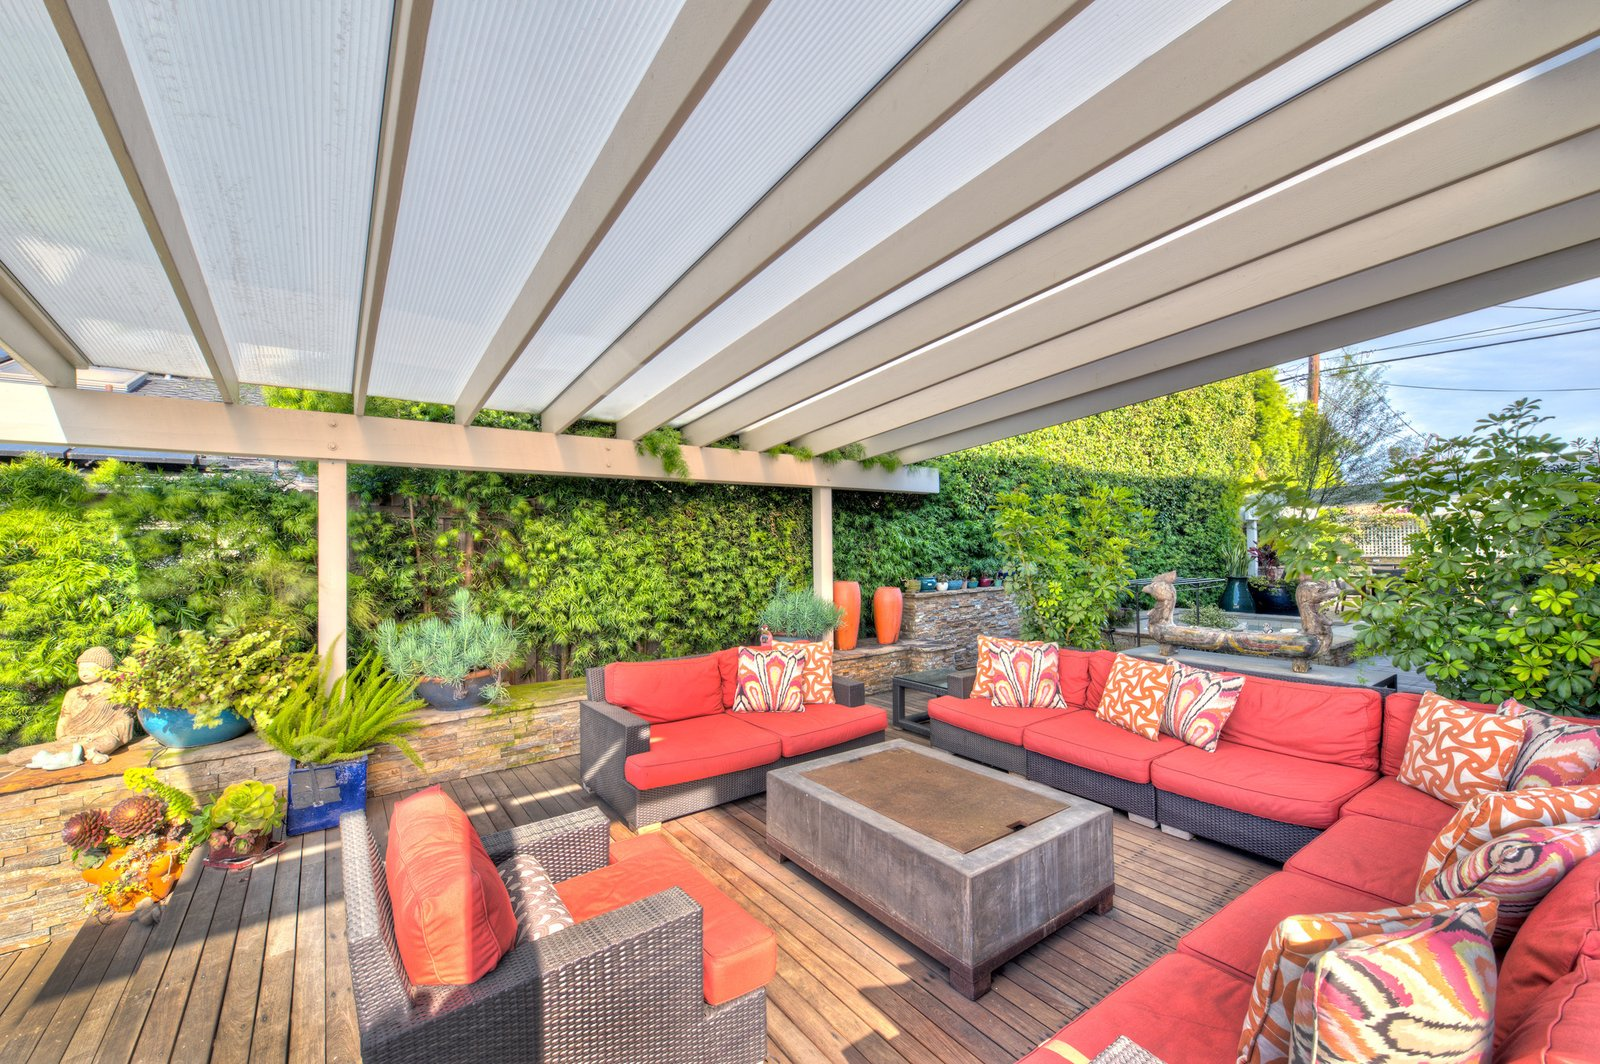 Outdoor Equipped with outdoor living, kitchen and dining areas—and a stunning fire pit, the deck also boasts a built-in spa.  Photo 2 of 9 in On the Market For $4.5M, This Venice Beach Compound Captures the Essence of Indoor-Outdoor Living